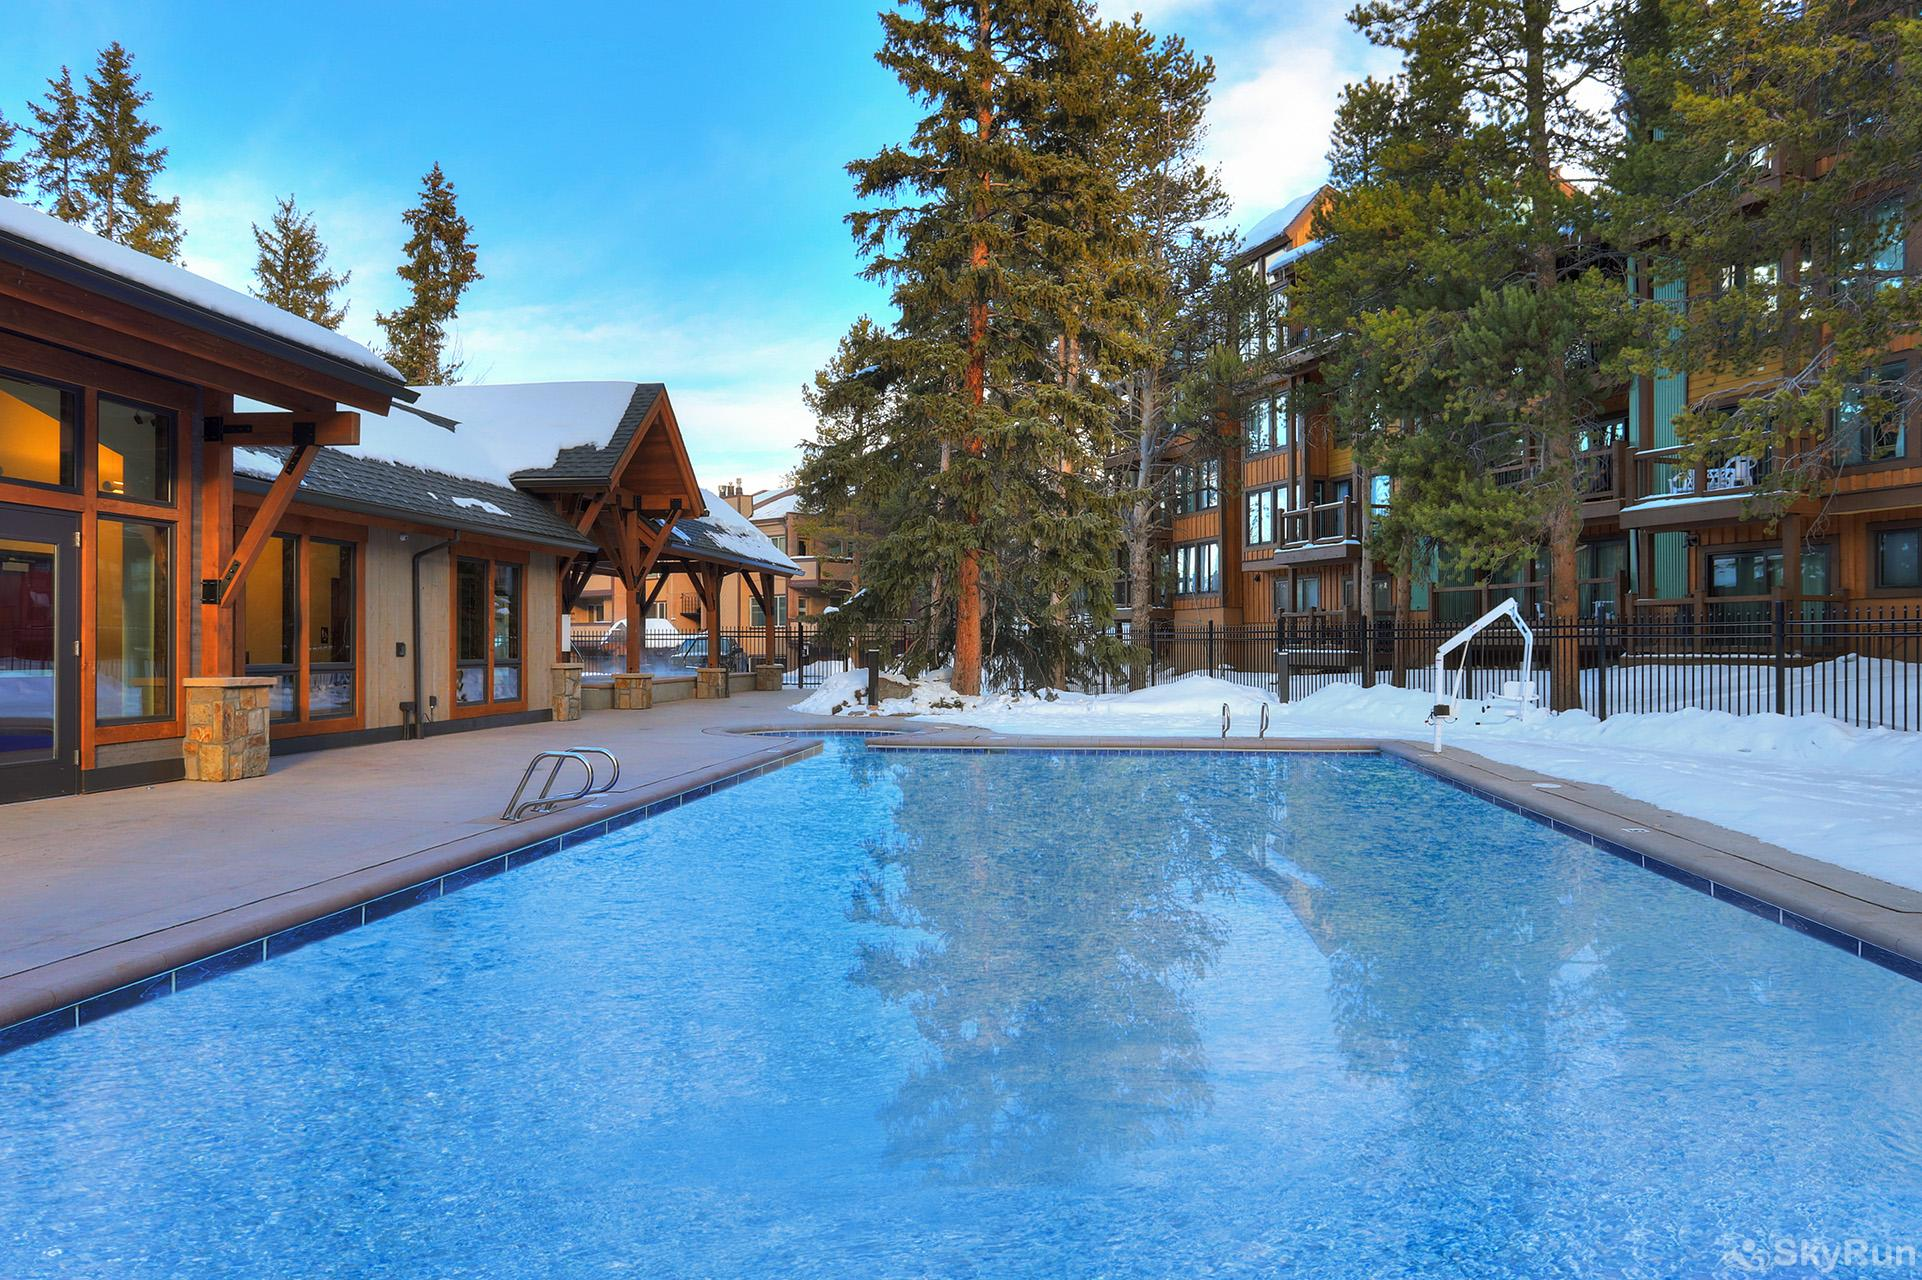 The Lift C12 Columbine Pool Complex outdoor heated pool